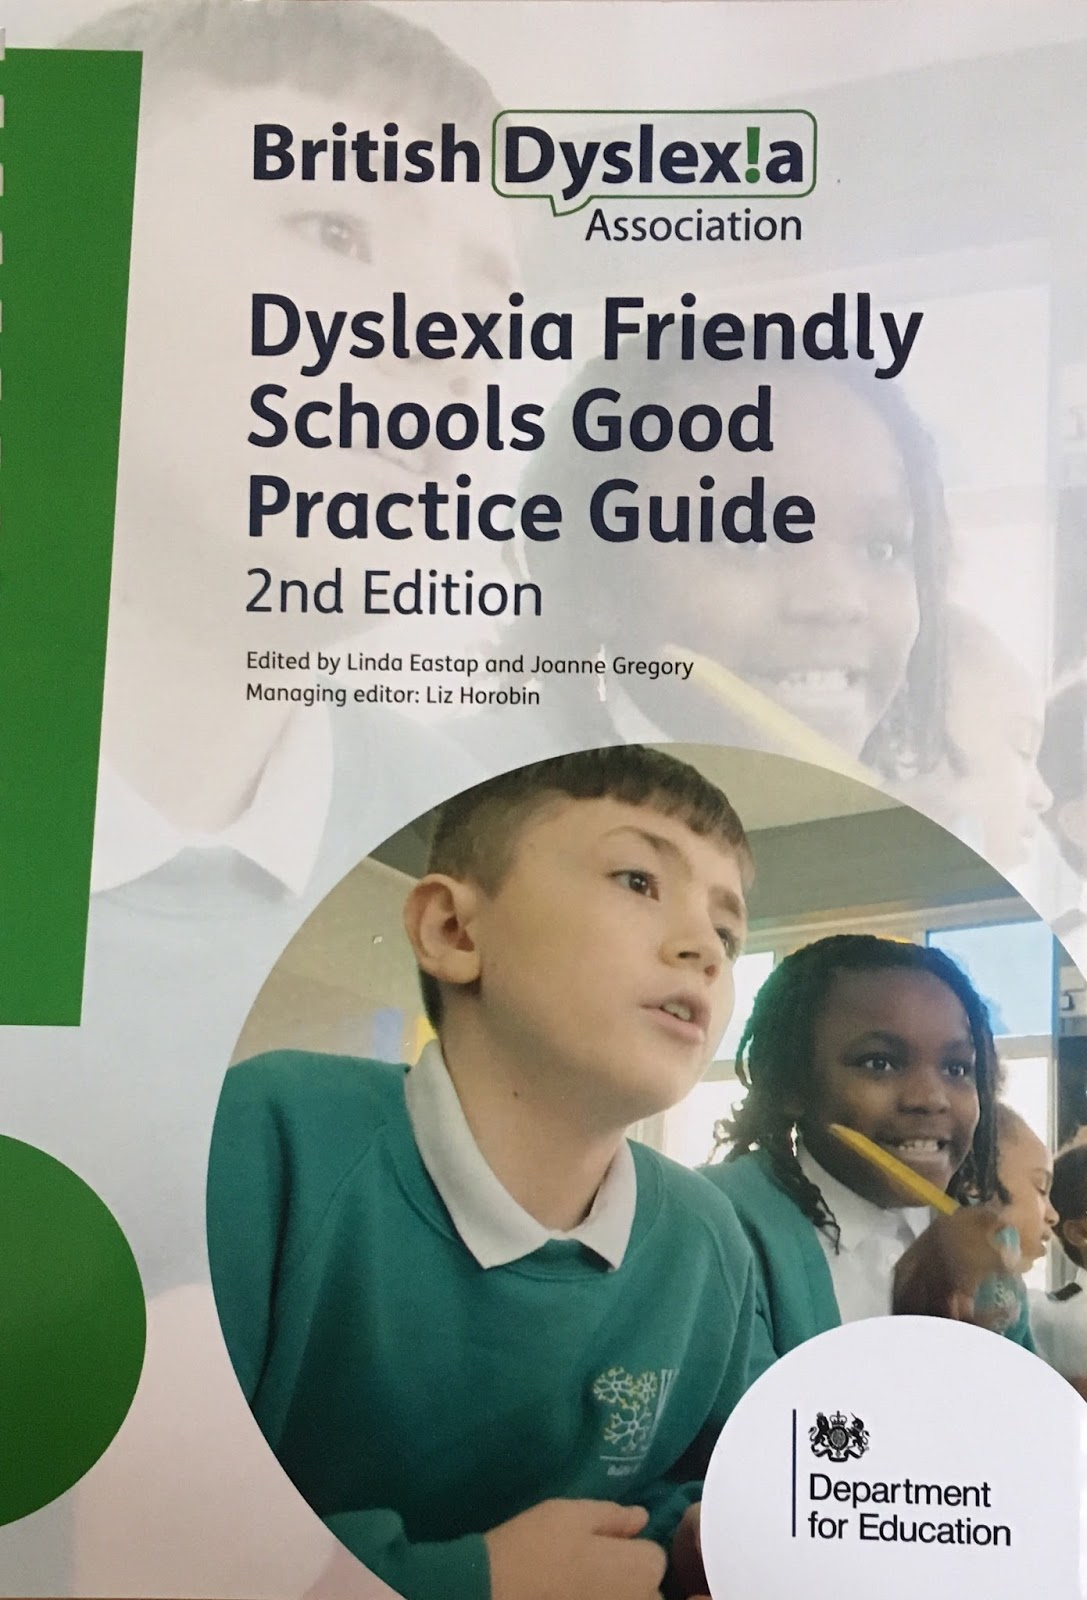 Download understanding dyslexia: a guide for teachers and parents.